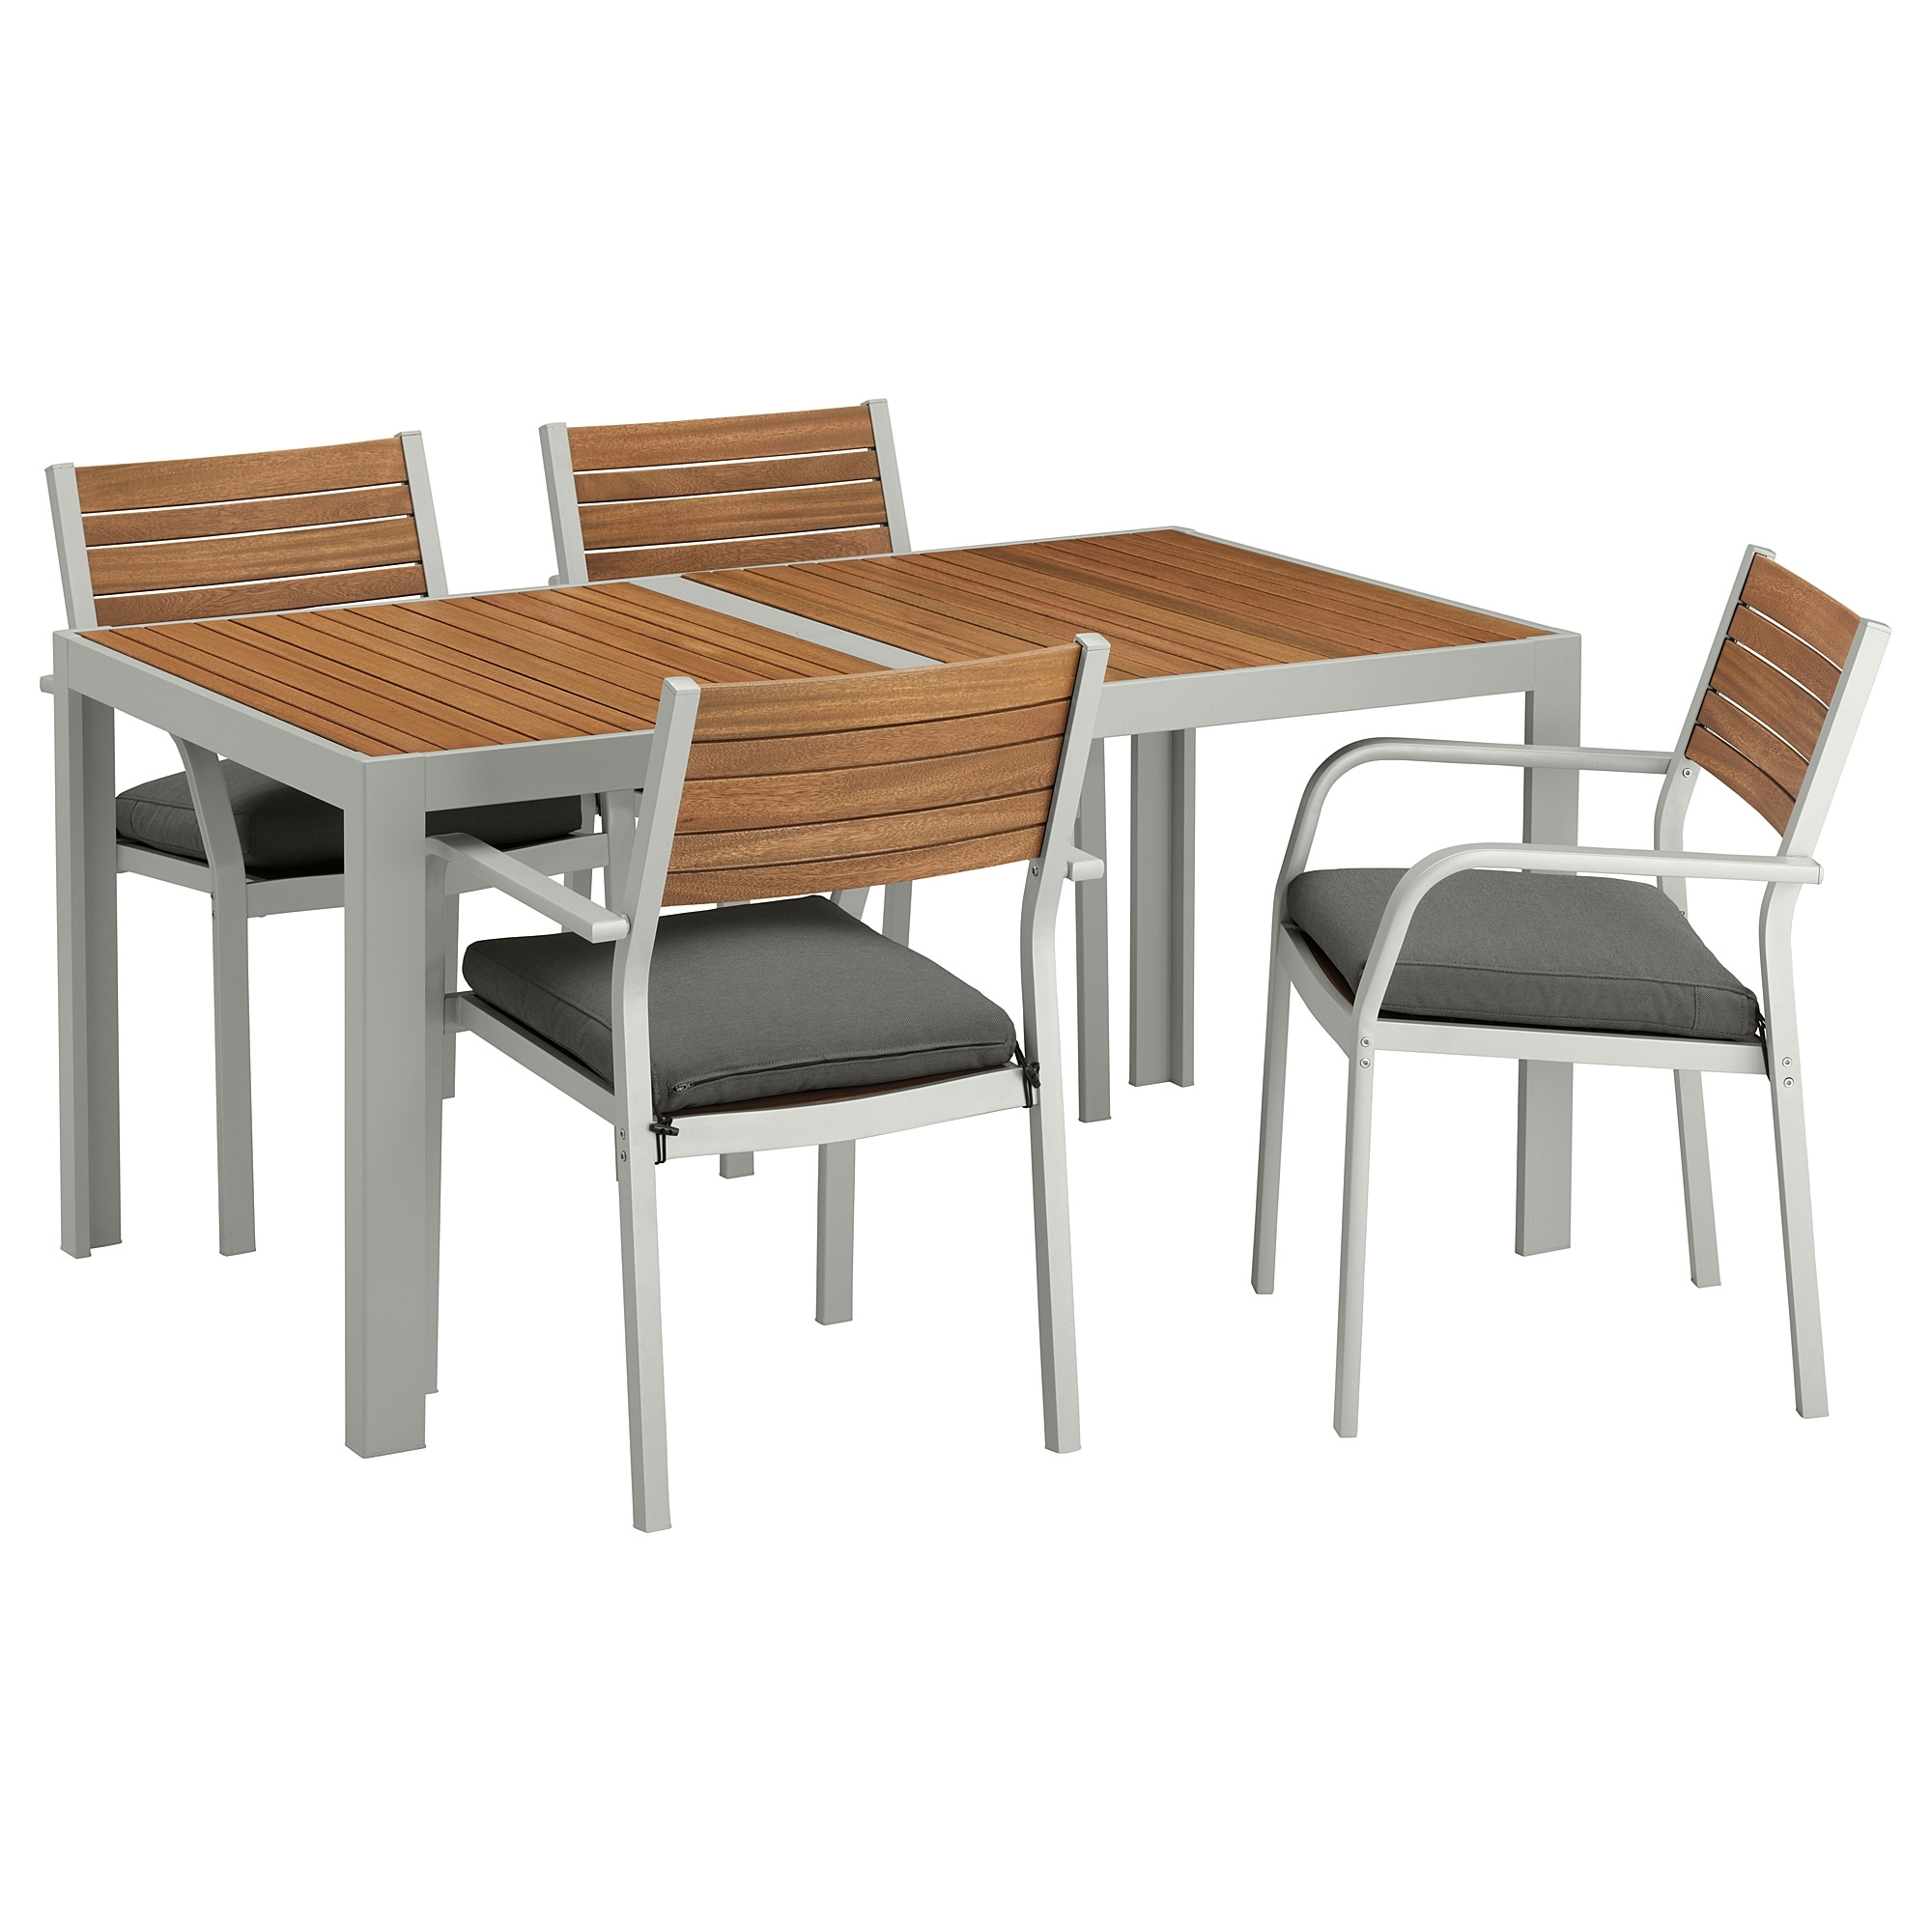 Ikea Lithuania - Shop For Furniture, Lighting, Home Accessories & More regarding Most Current Over Dining Tables Lighting